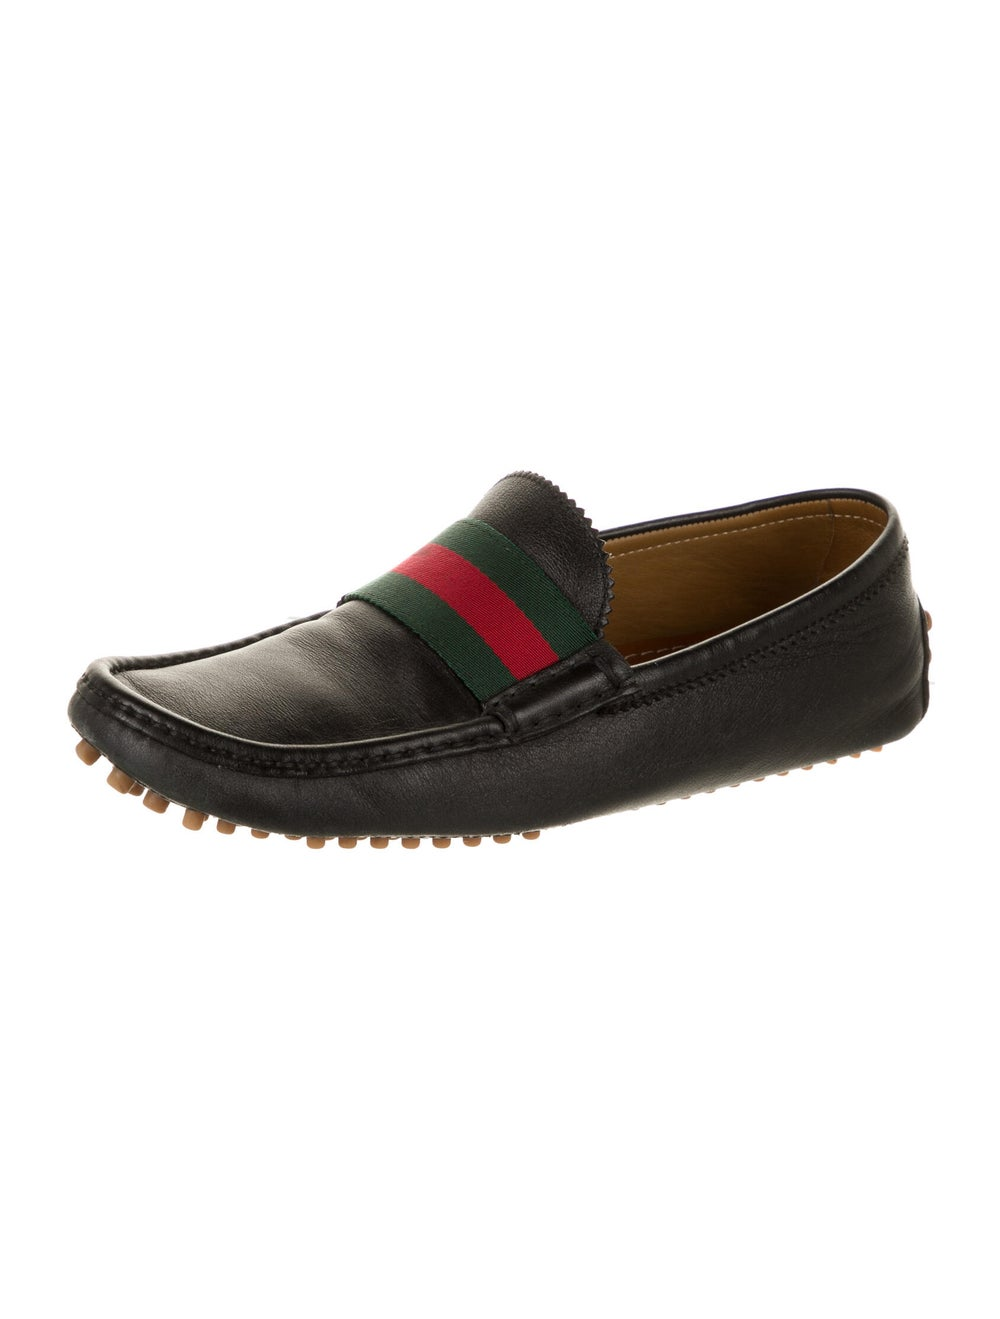 Gucci Web Accent Leather Drivers Black - image 2